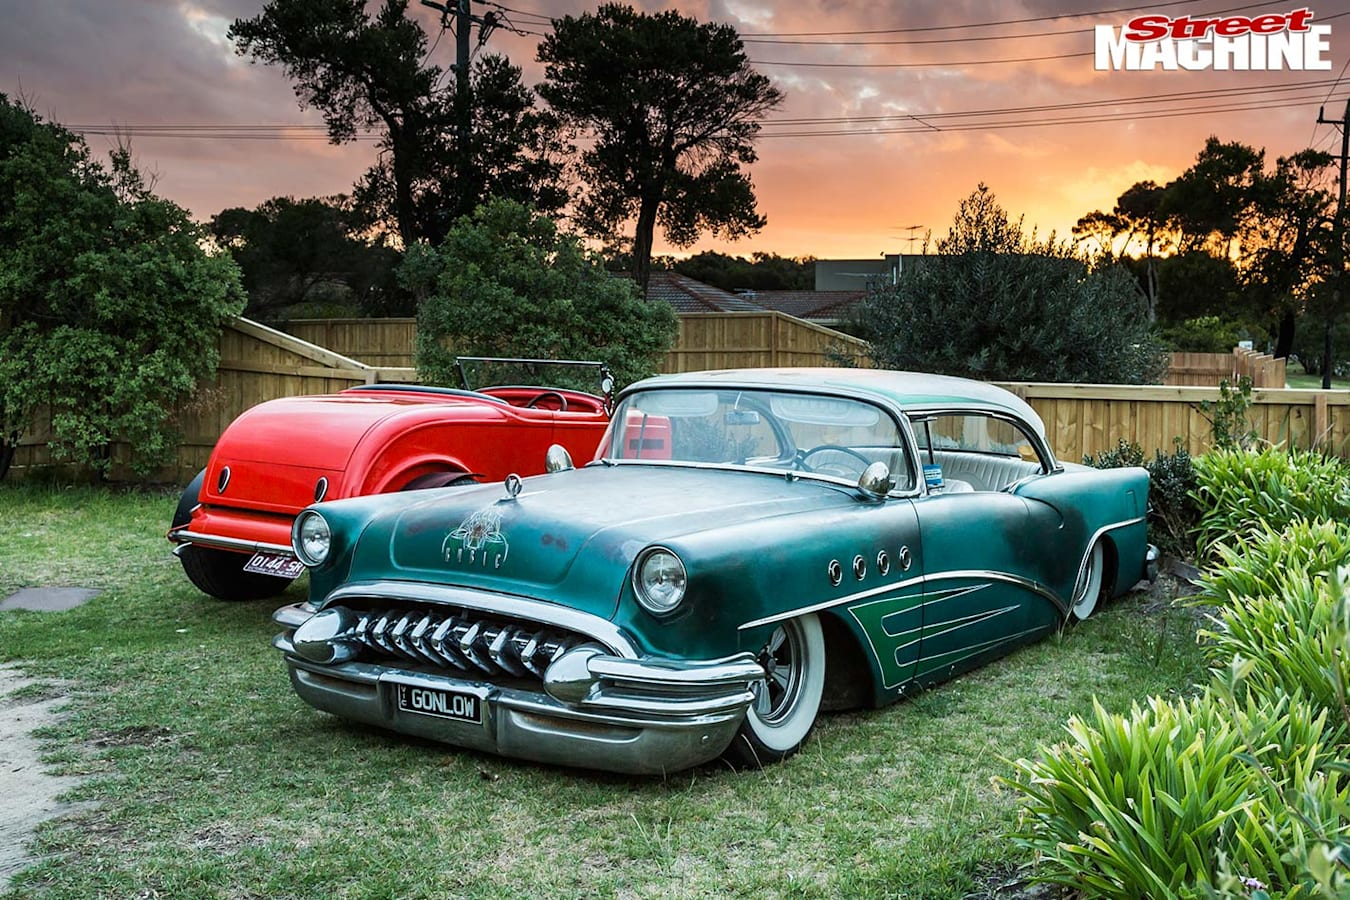 slammed Desoto-grille Buick and 32 roadster